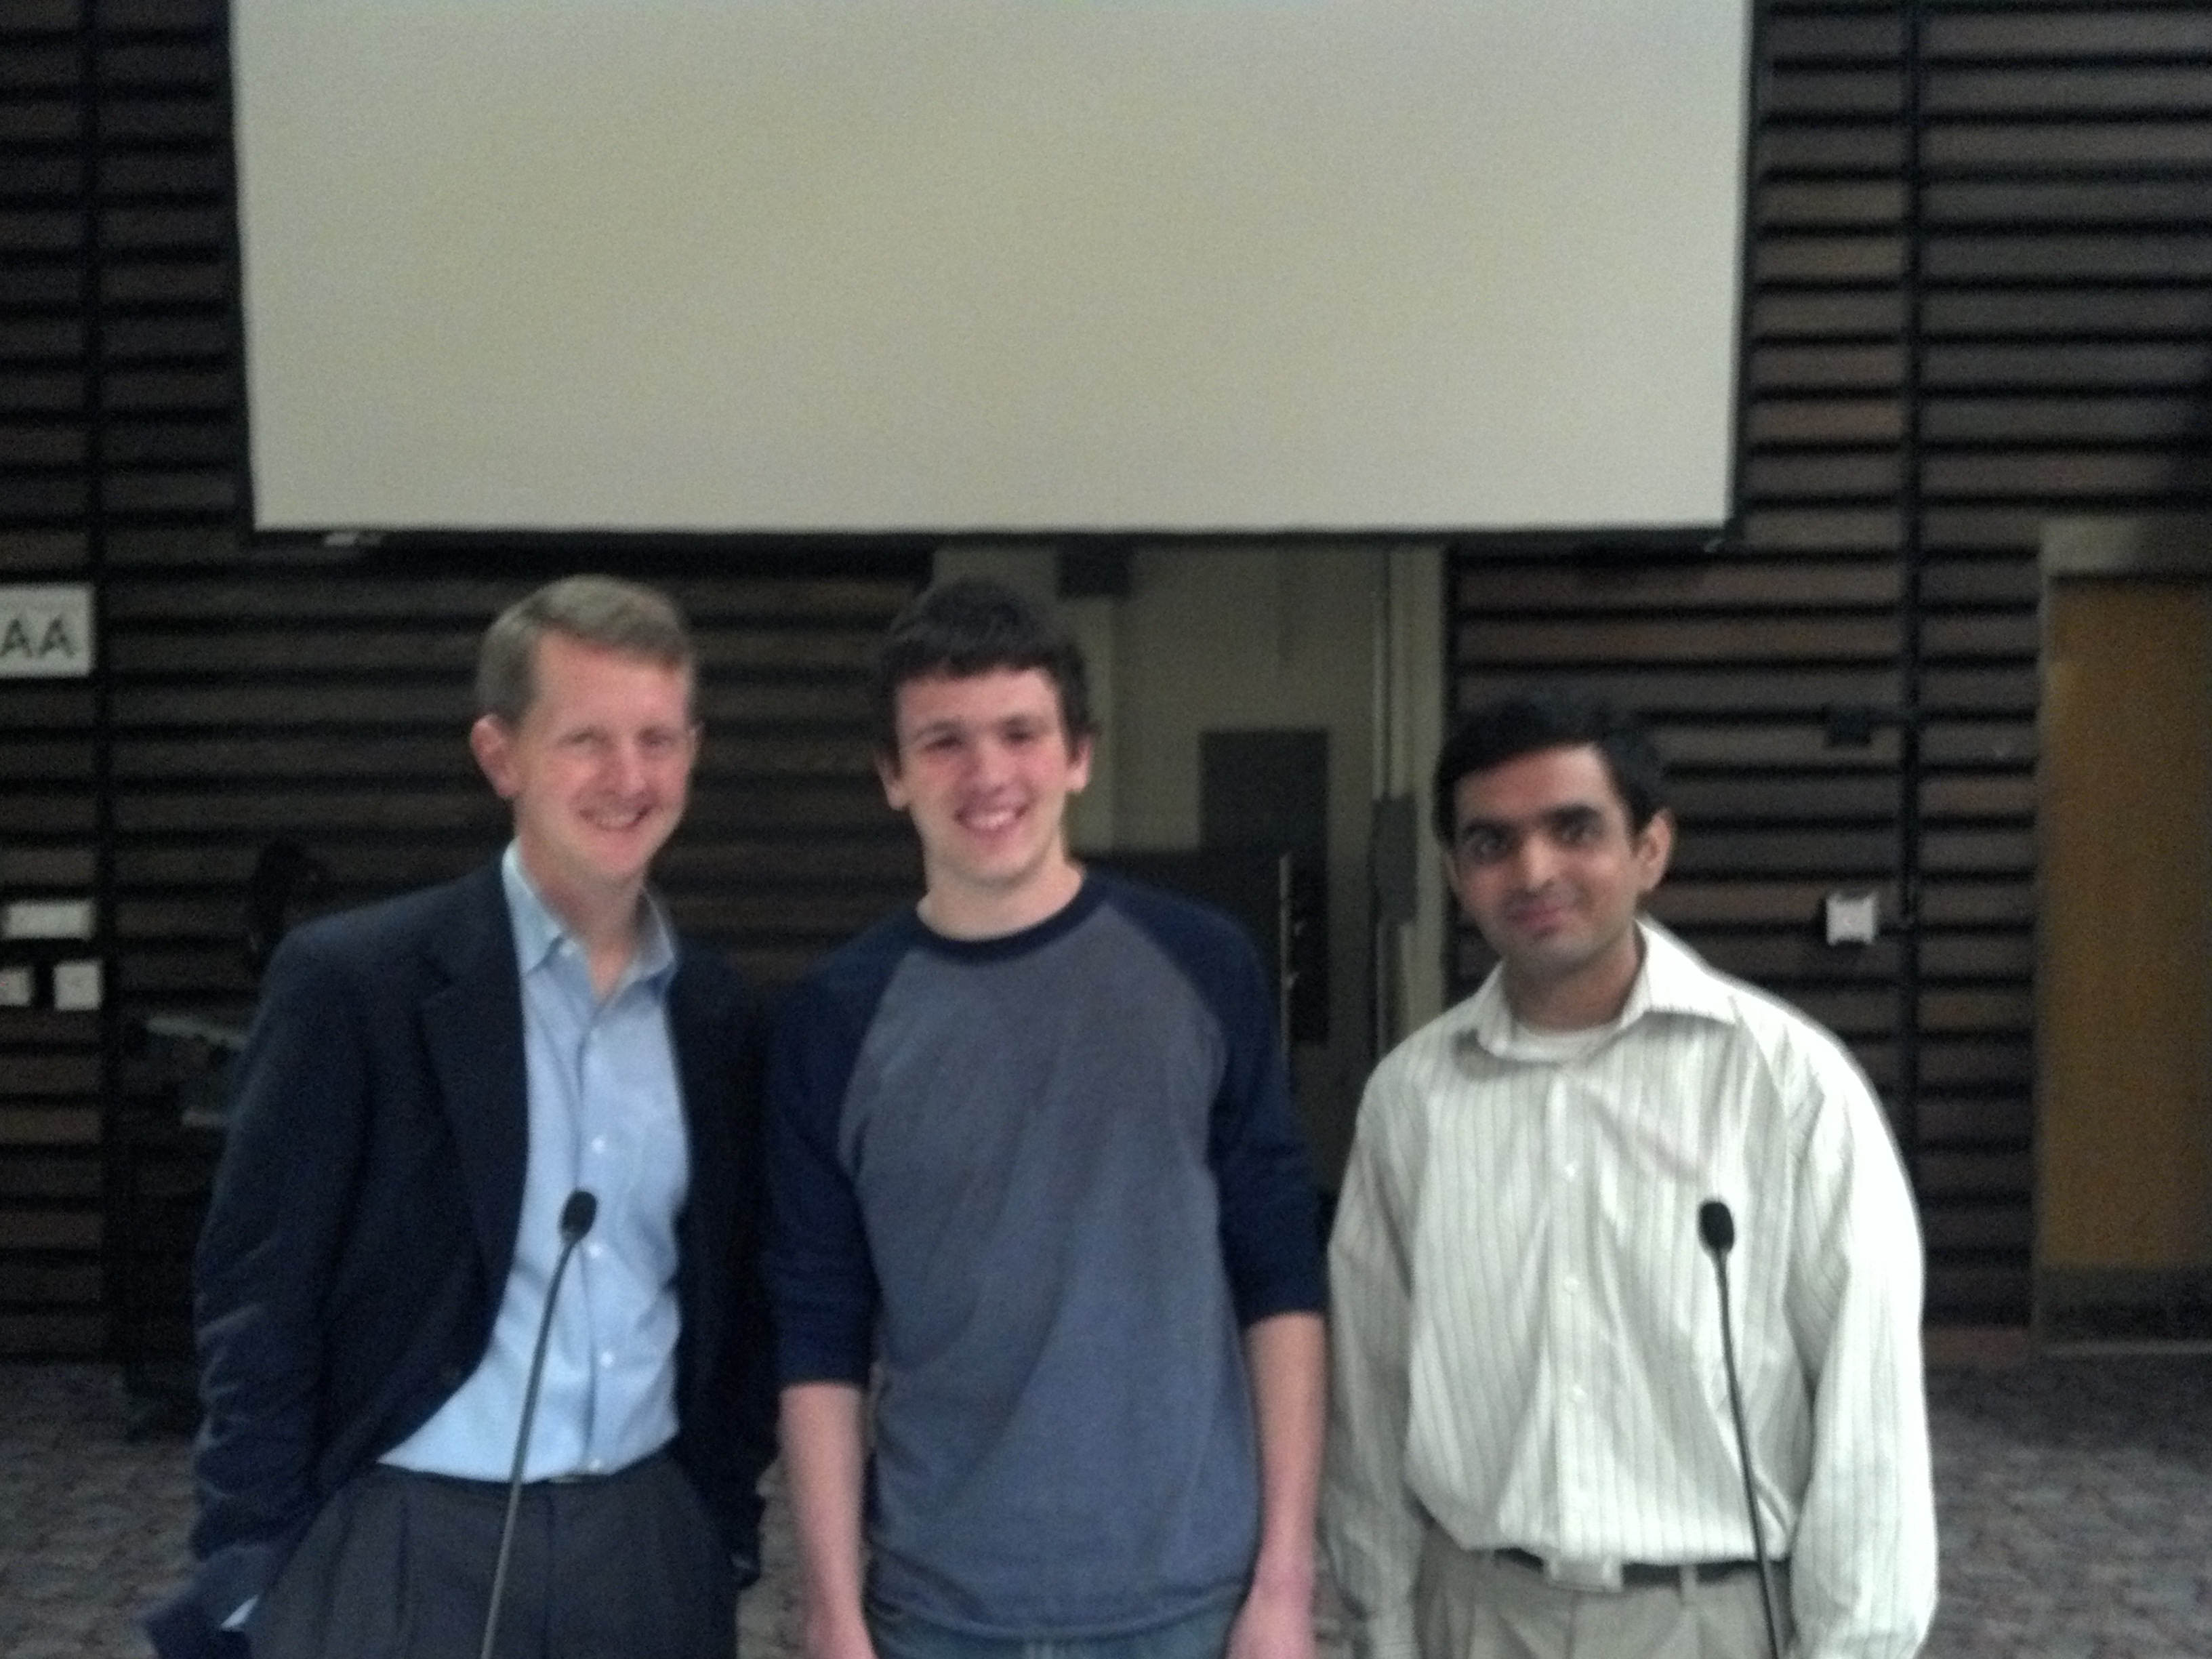 Left to right: Ken Jennings, Vice President Aaron Cohen, and President Nimit Dhulekar